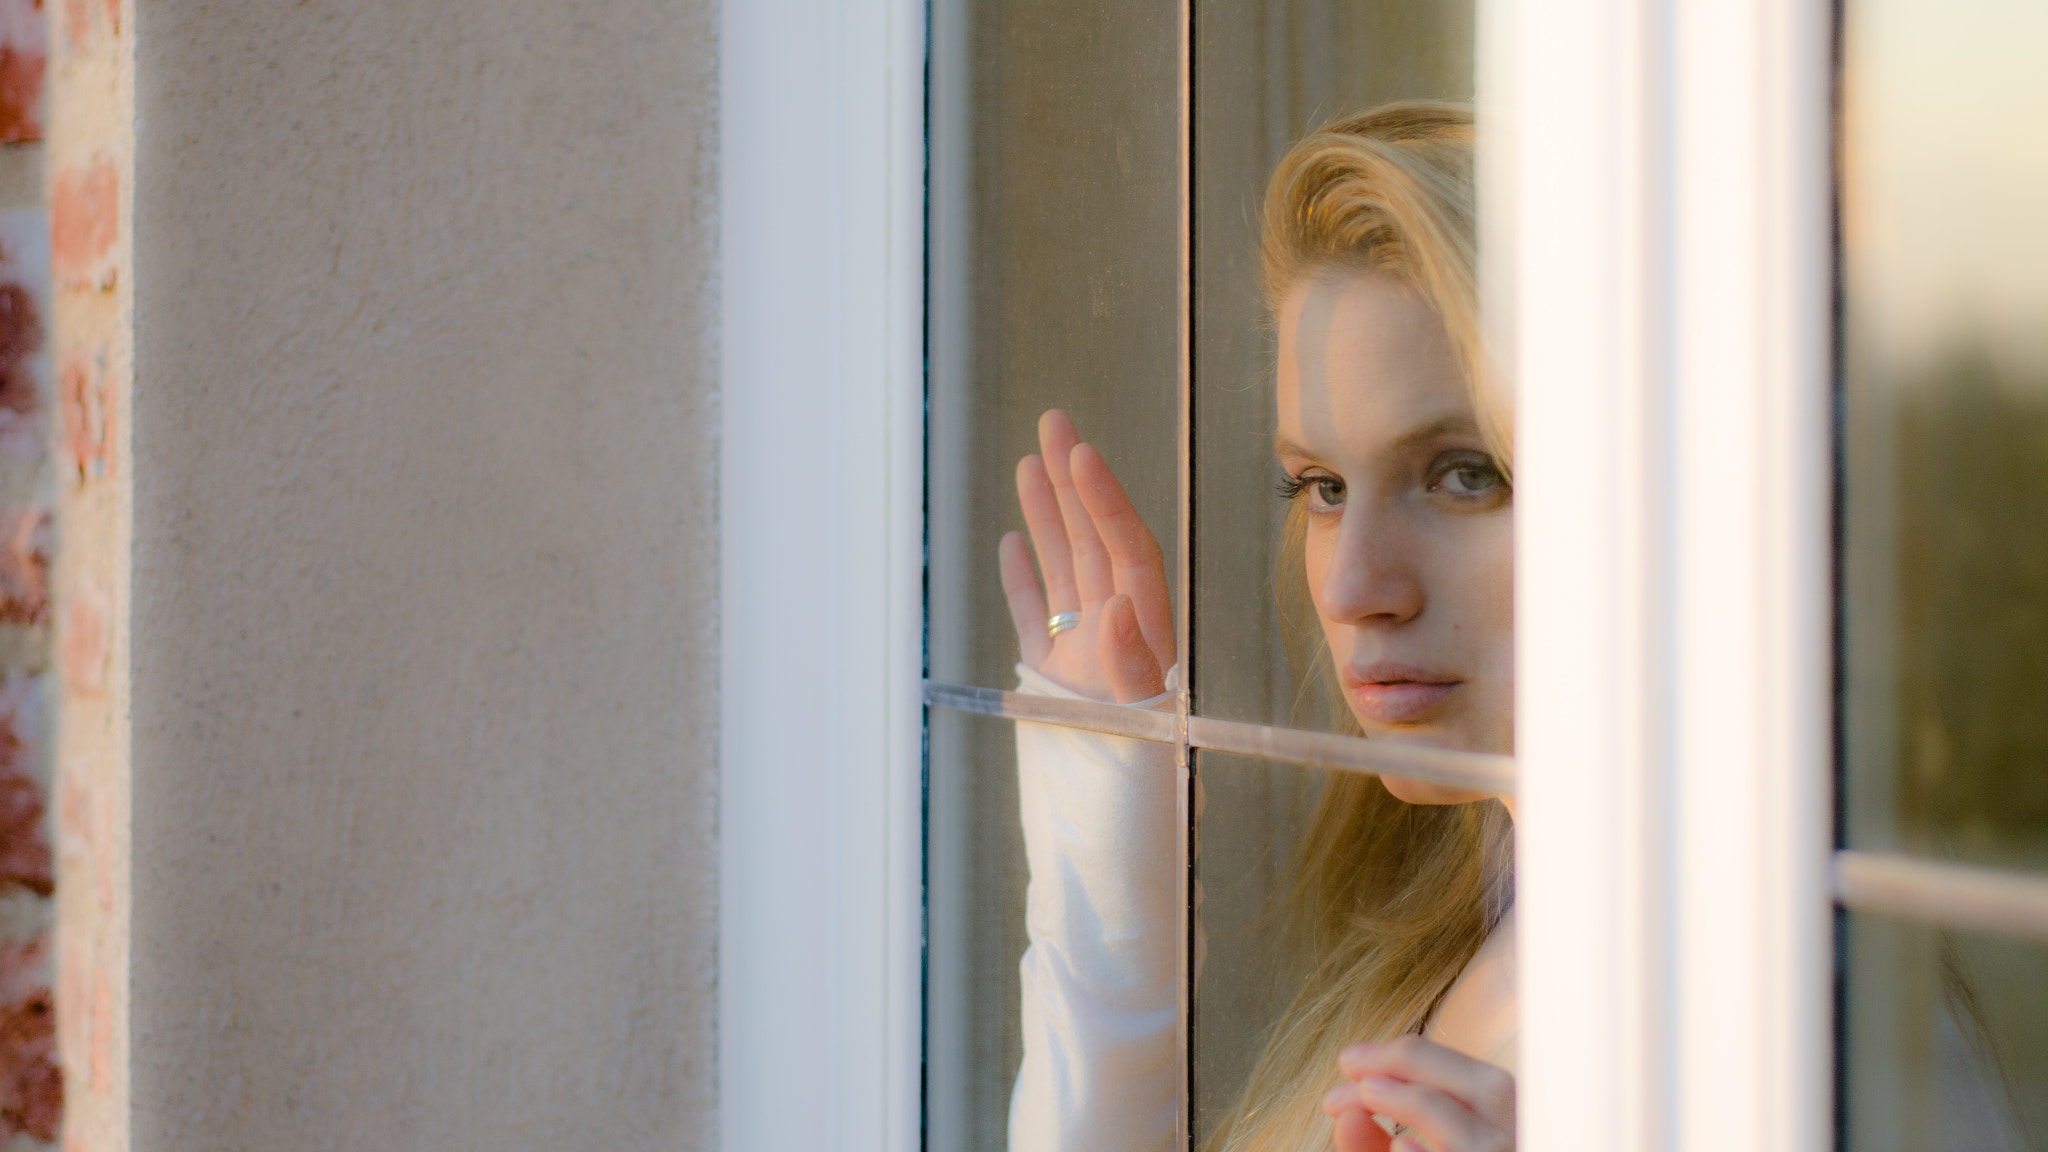 Photograph at the window by Davide Pellegrini on 500px